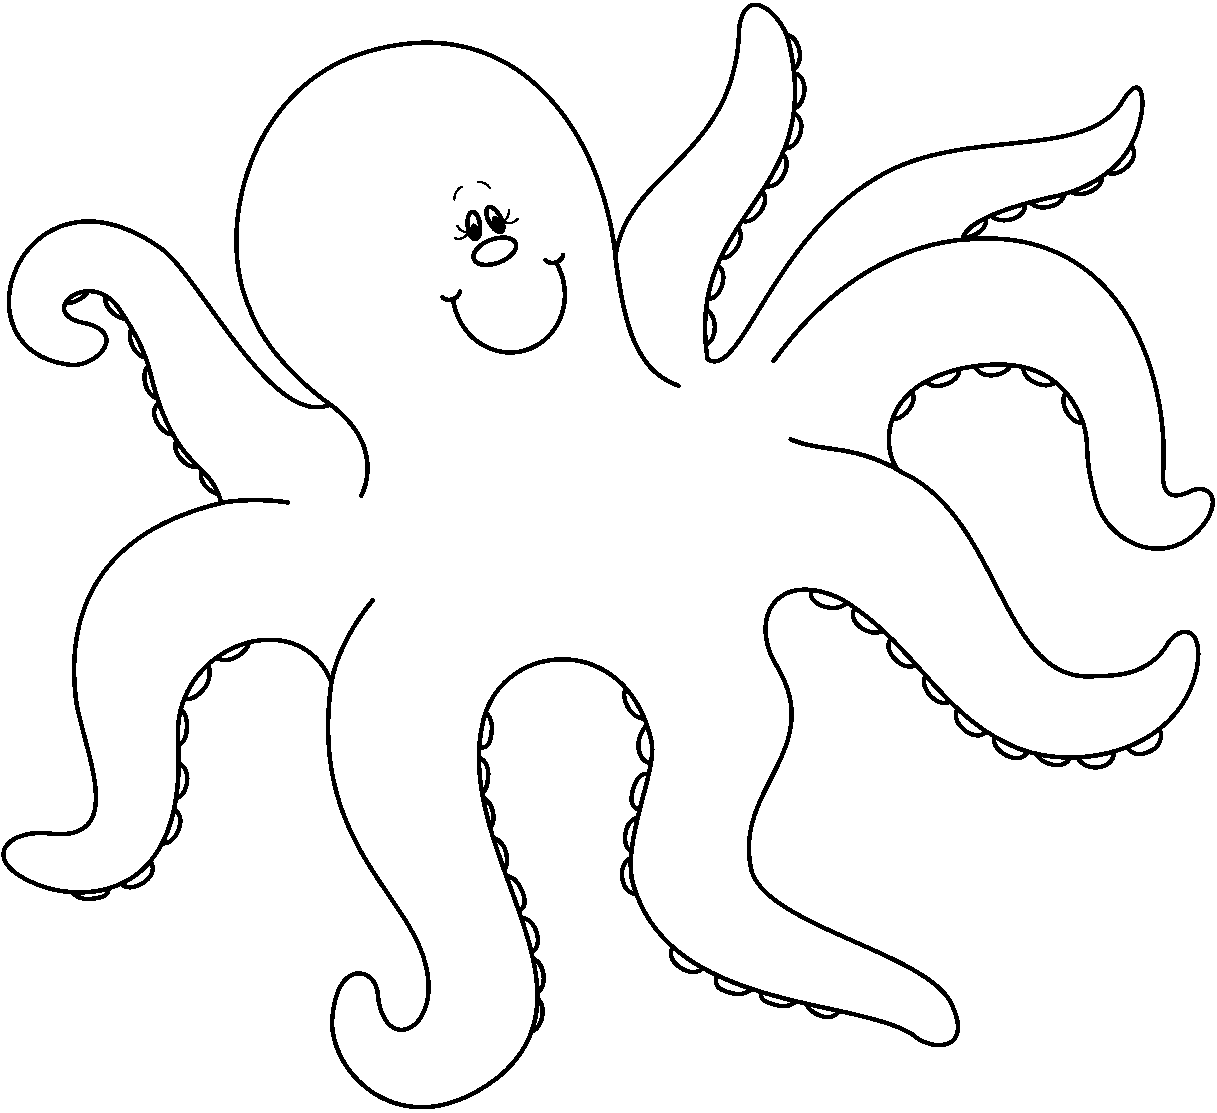 hight resolution of octopus clipart free clipart image 6